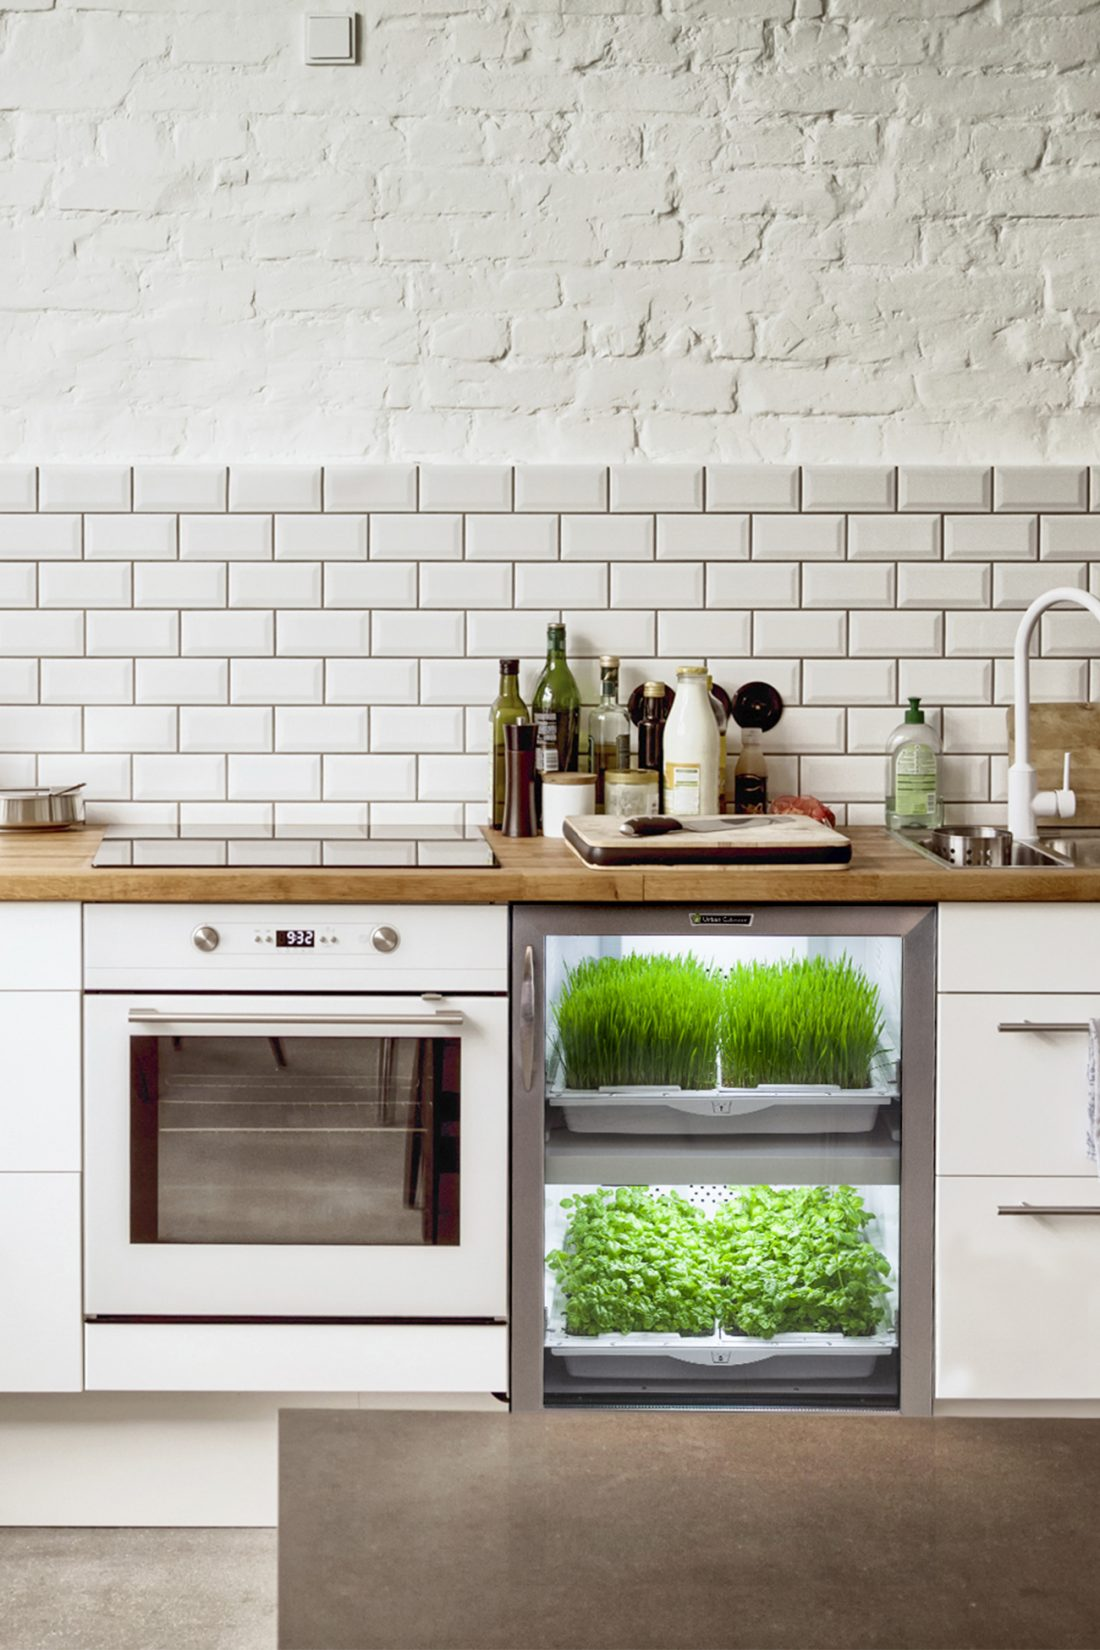 3 Tech Solutions to Growing Herbs and Veggies at Home